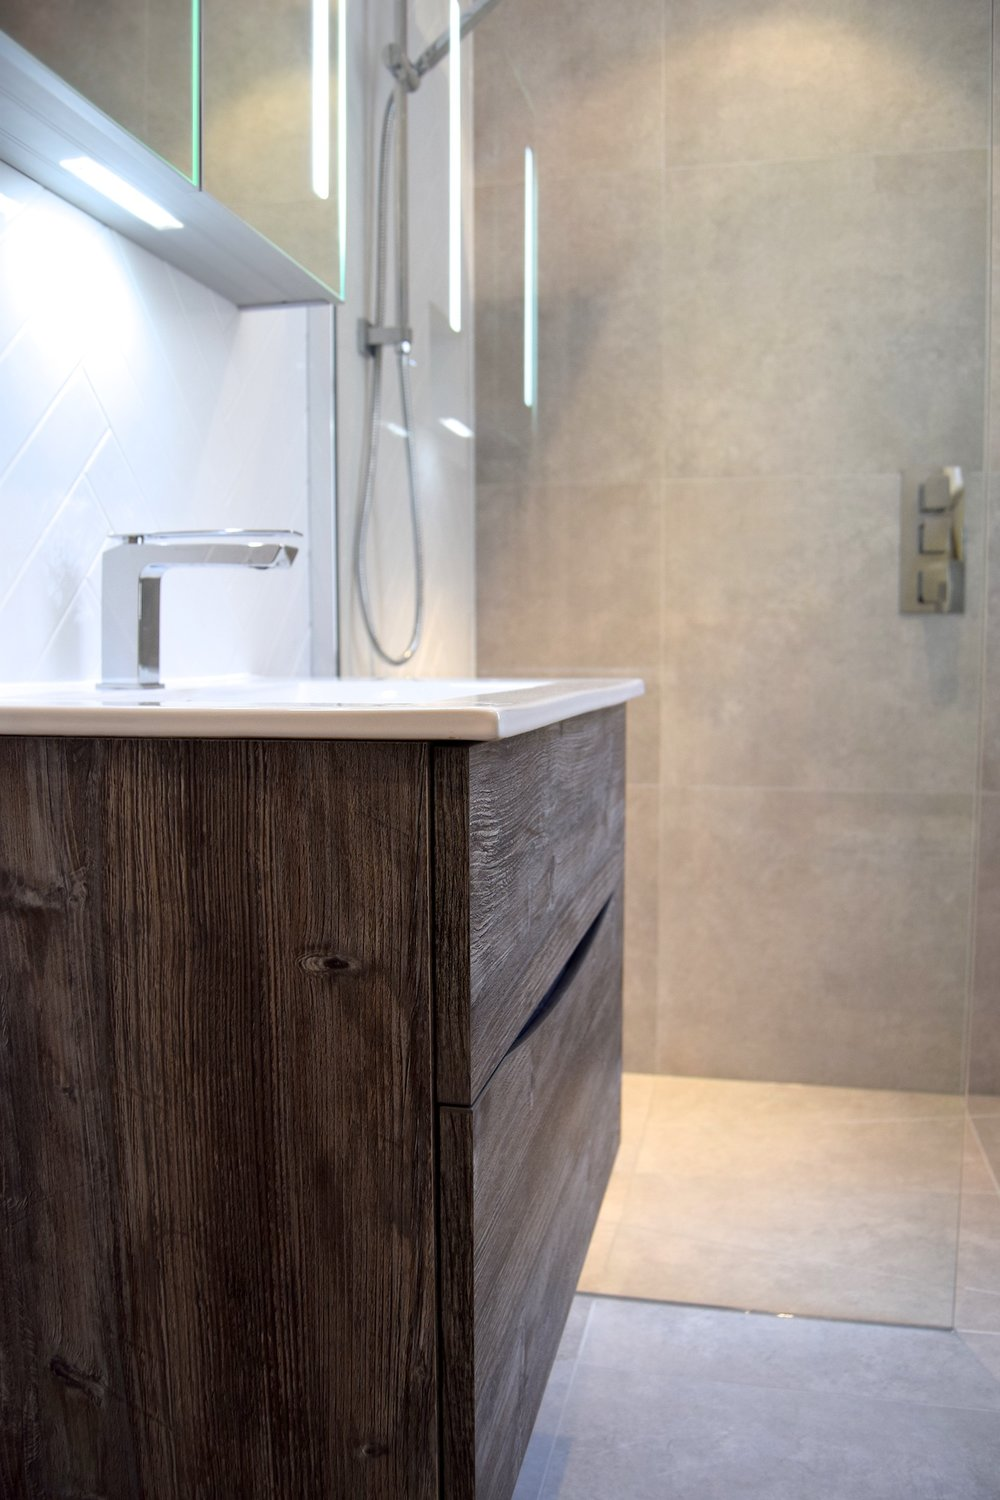 Retreat Bathrooms Bathroom Design, Refurbishment, Supply & Installation Teddington, Richmond 754.jpg